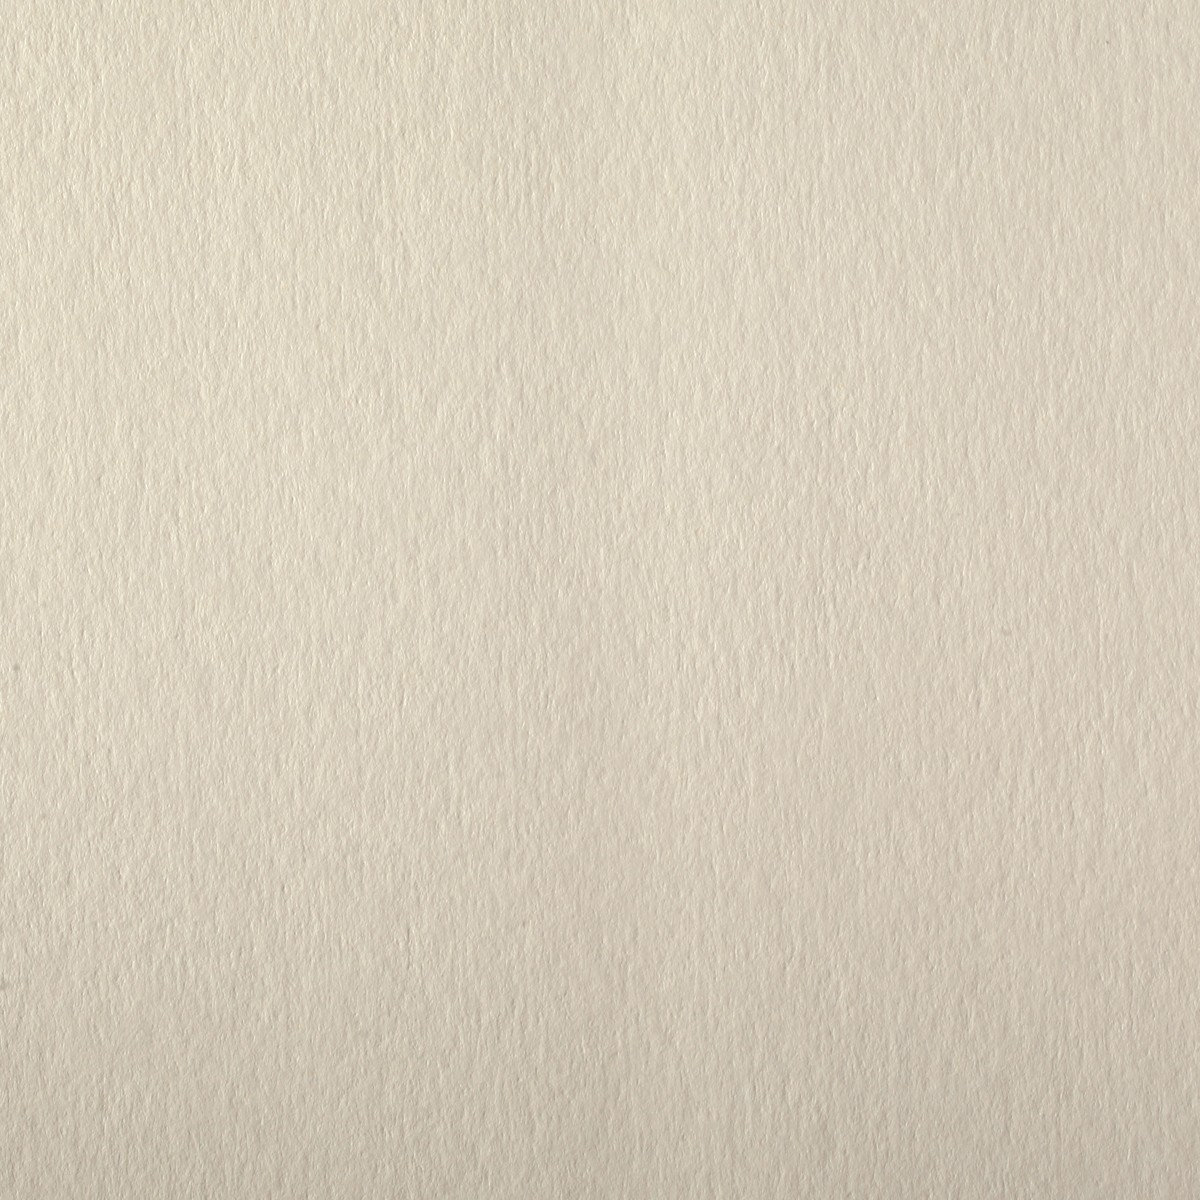 "Colorplan China White 12"" x 12"" 100# Cover Sheets Pack of 50"